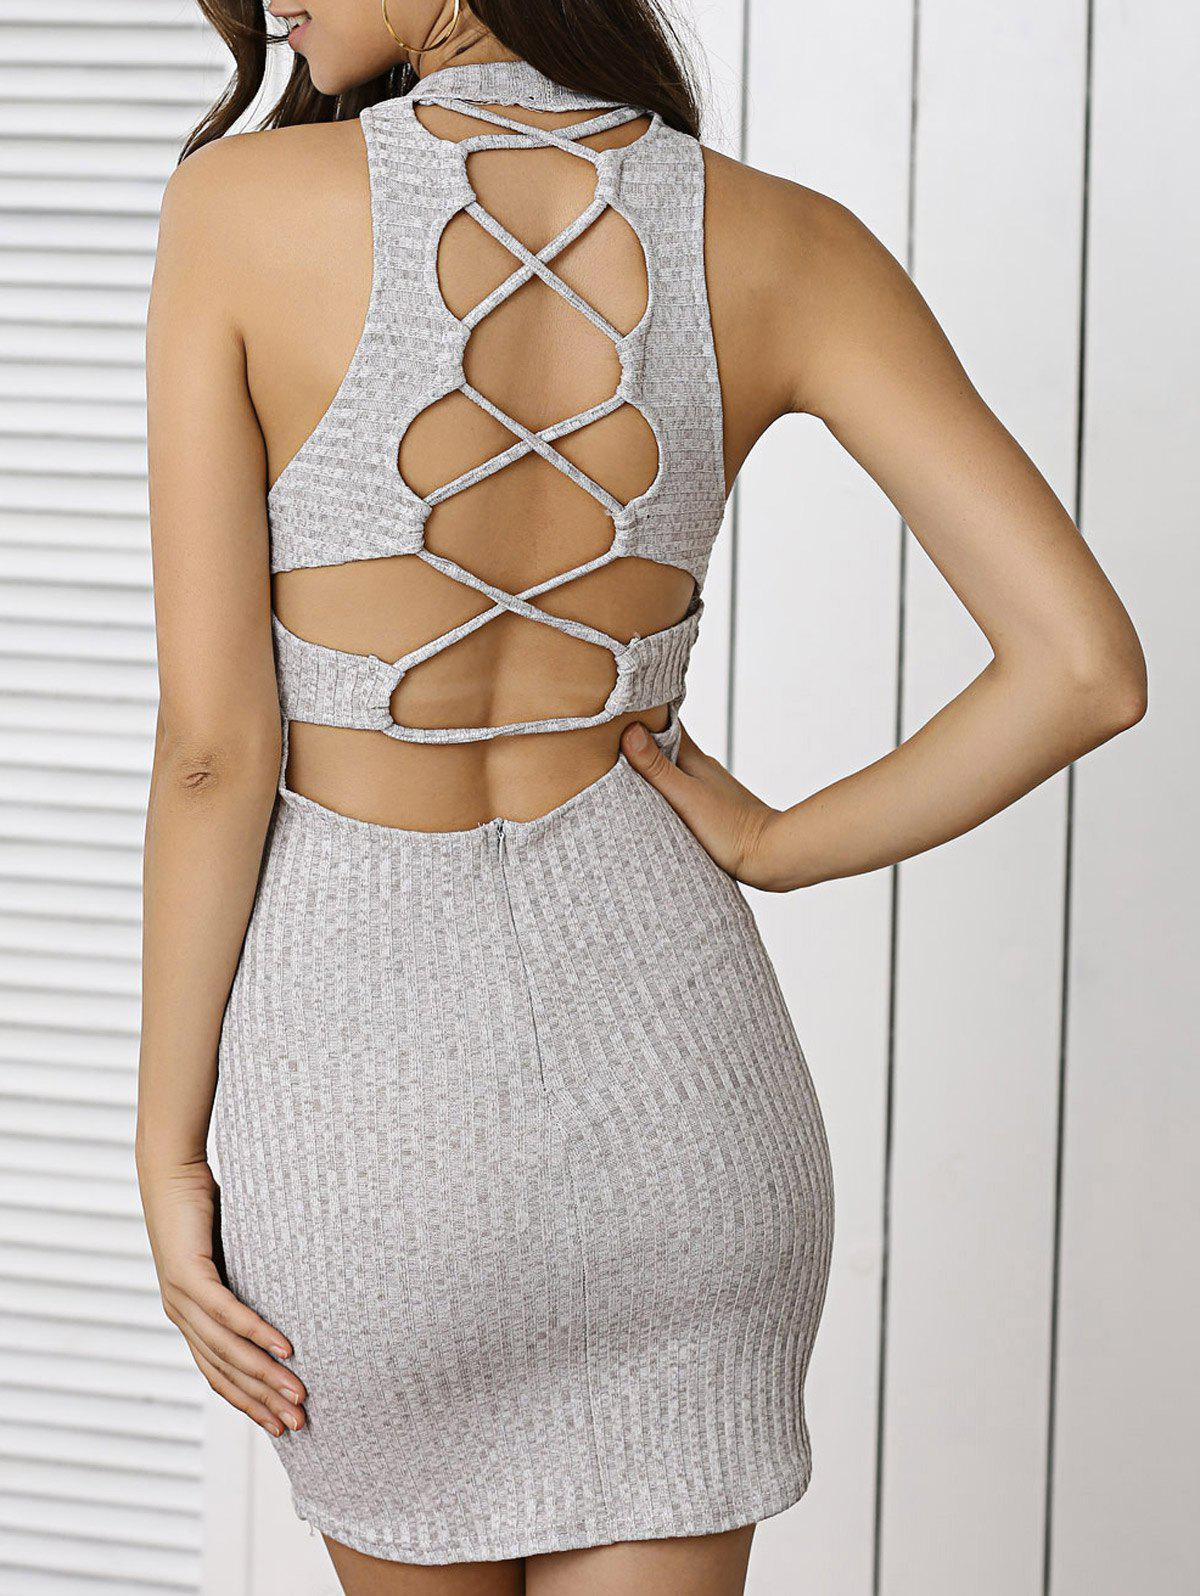 Alluring Sleeveless Lace-Up Back Knitted Sheath Dress